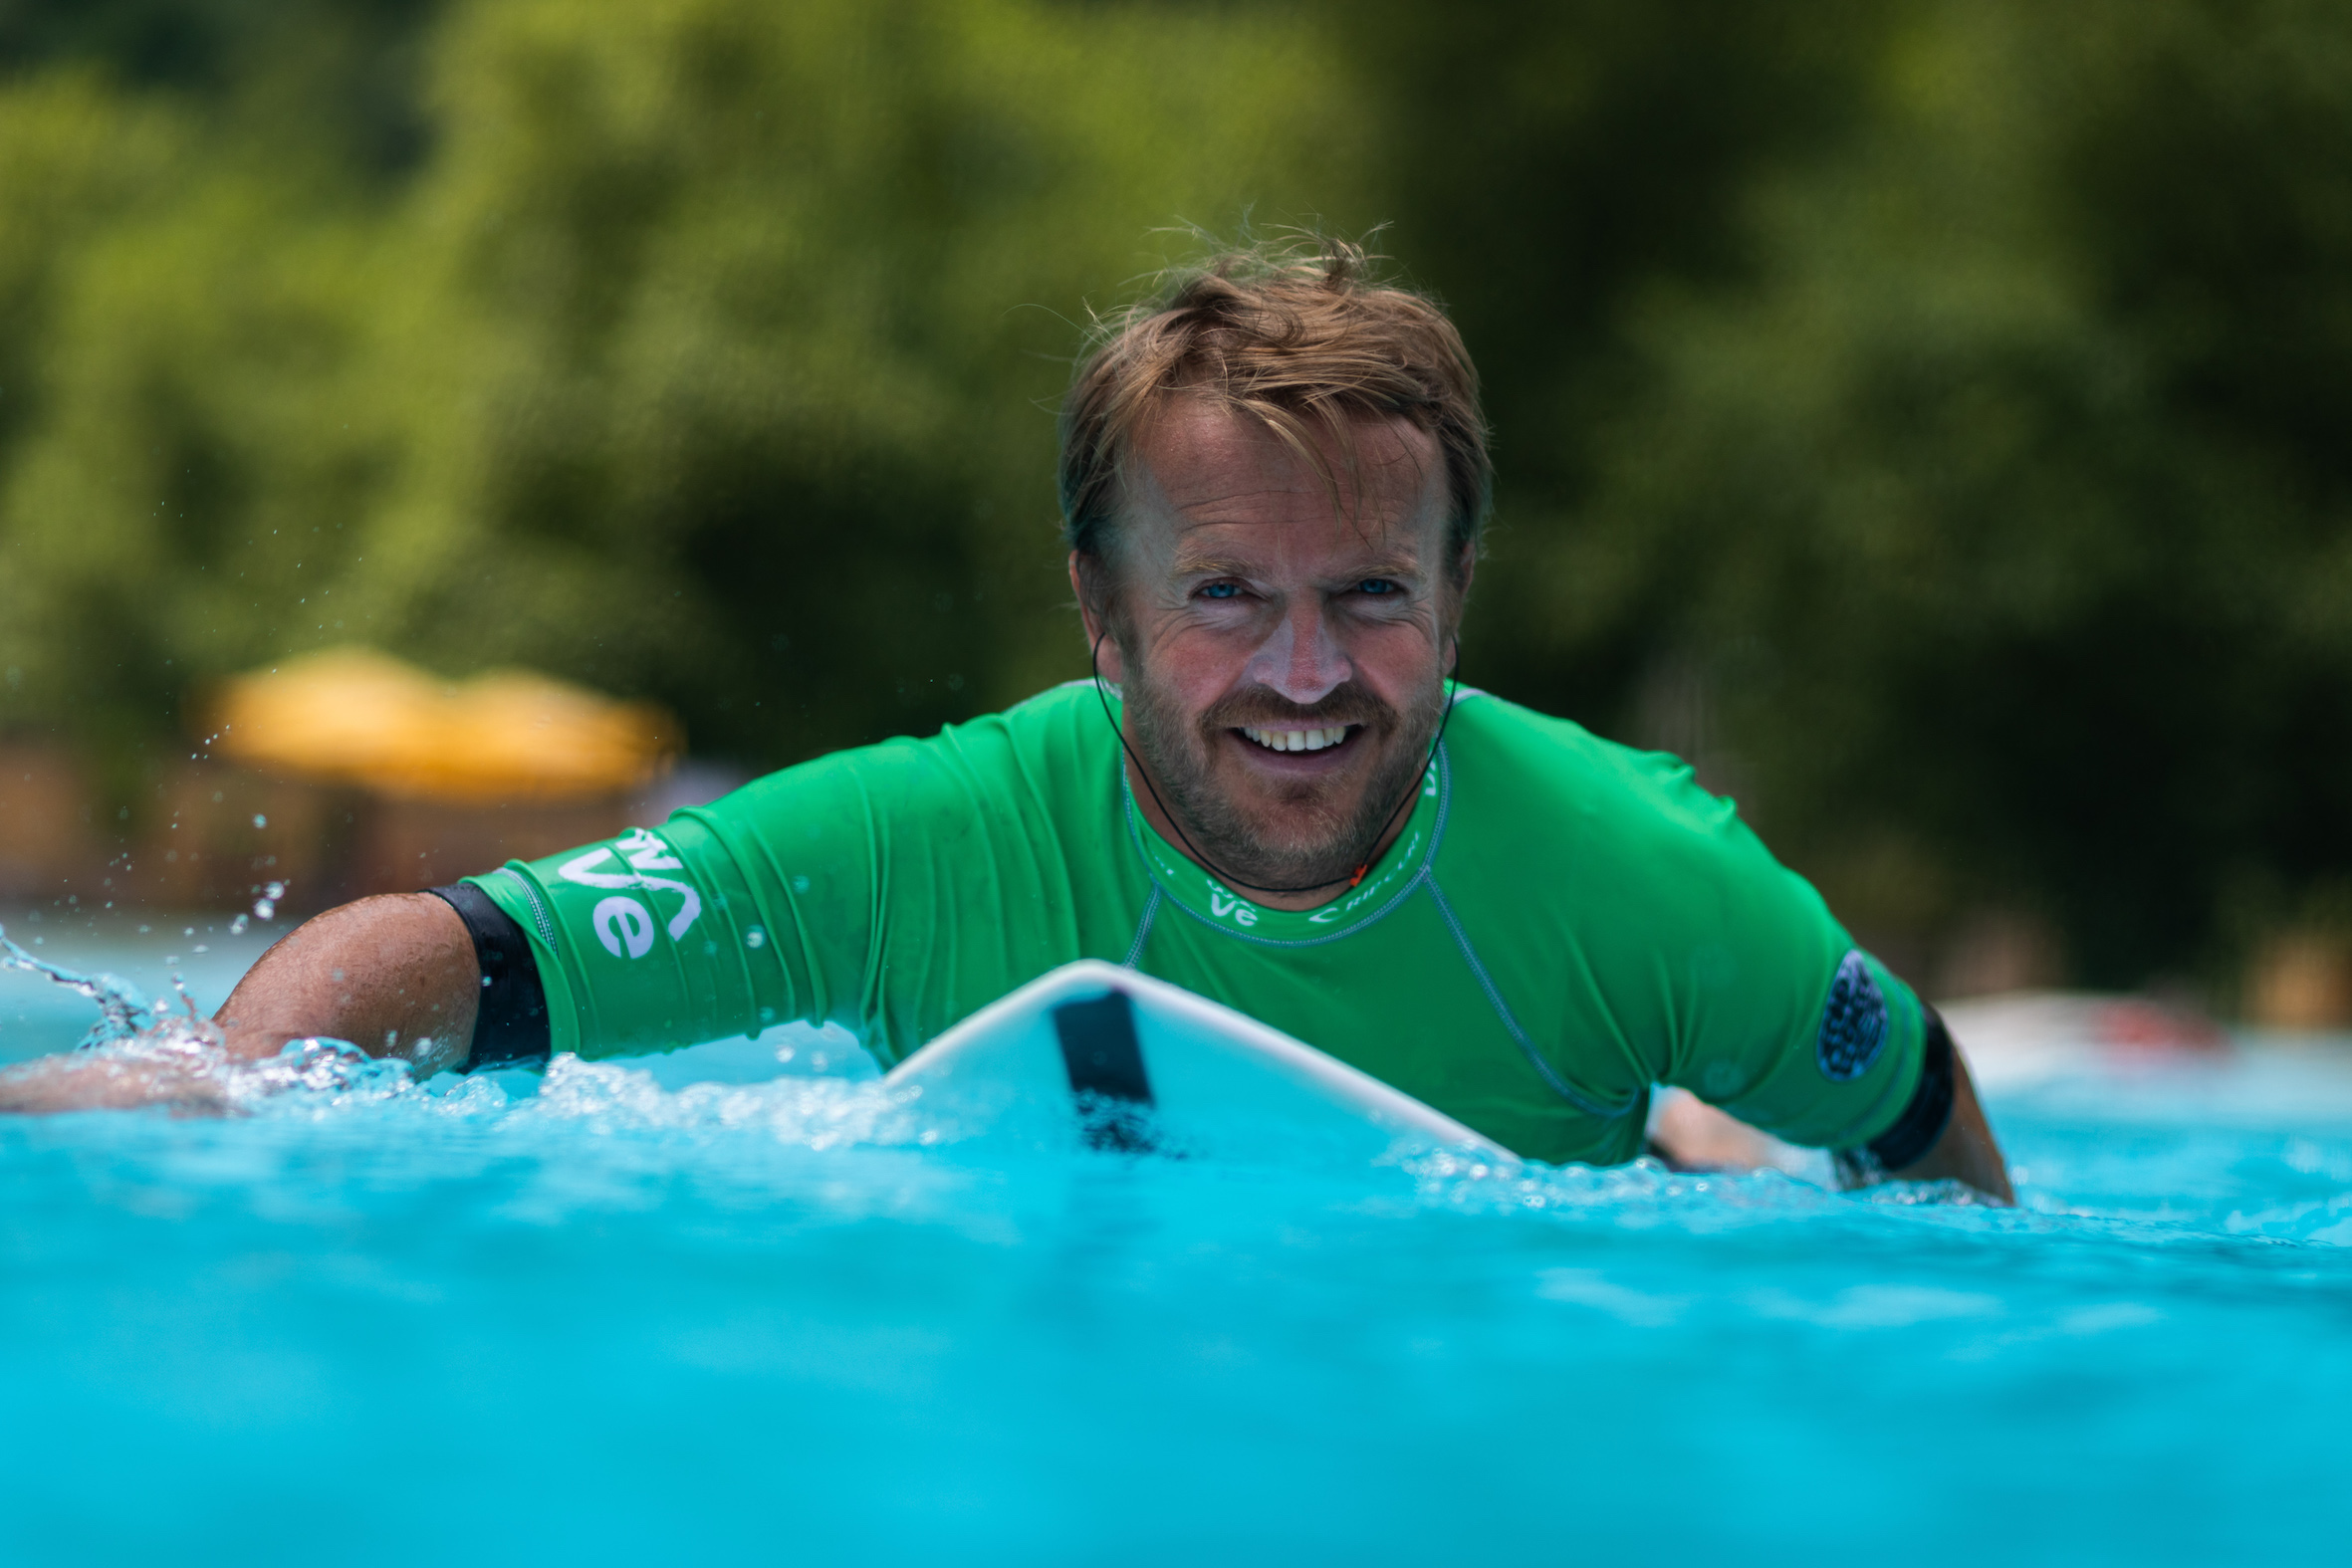 Making The Wave: Meet the Man Behind Bristol's New Wave Pool